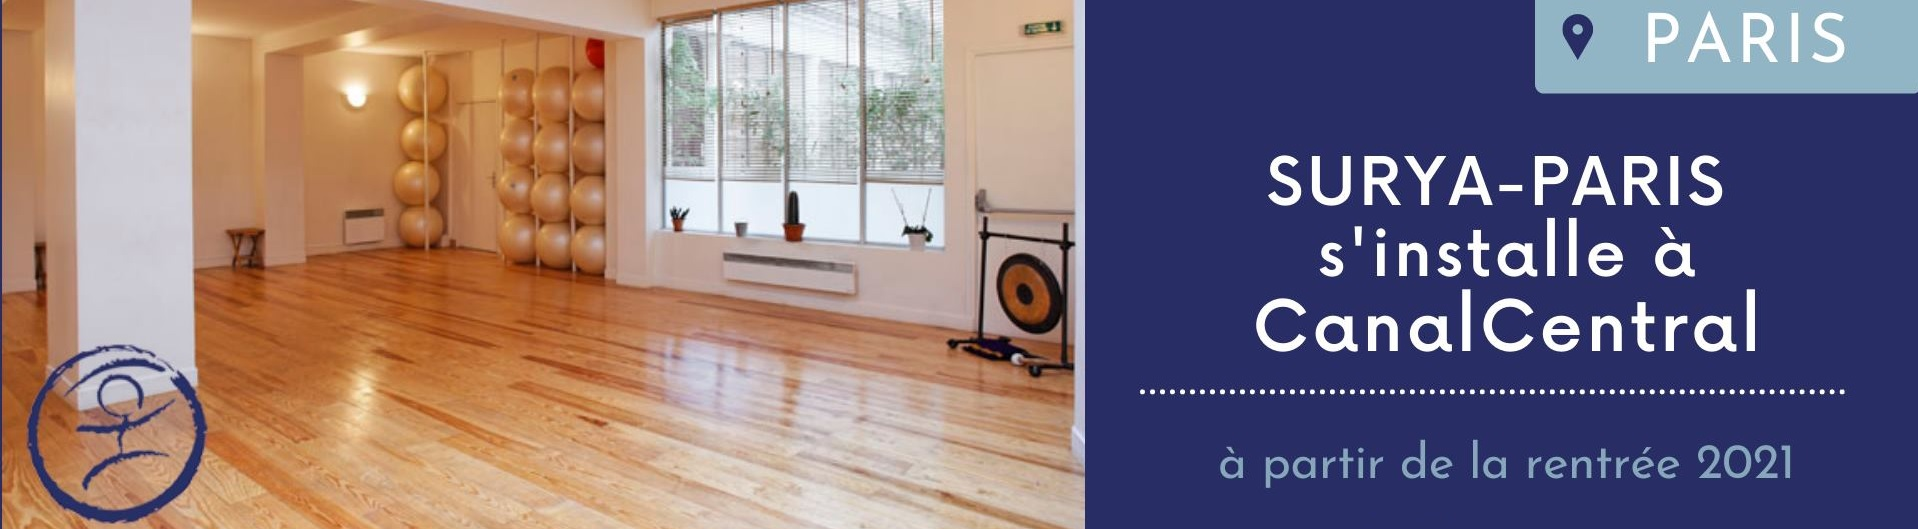 Paris: New yoga studio at CanalCentral